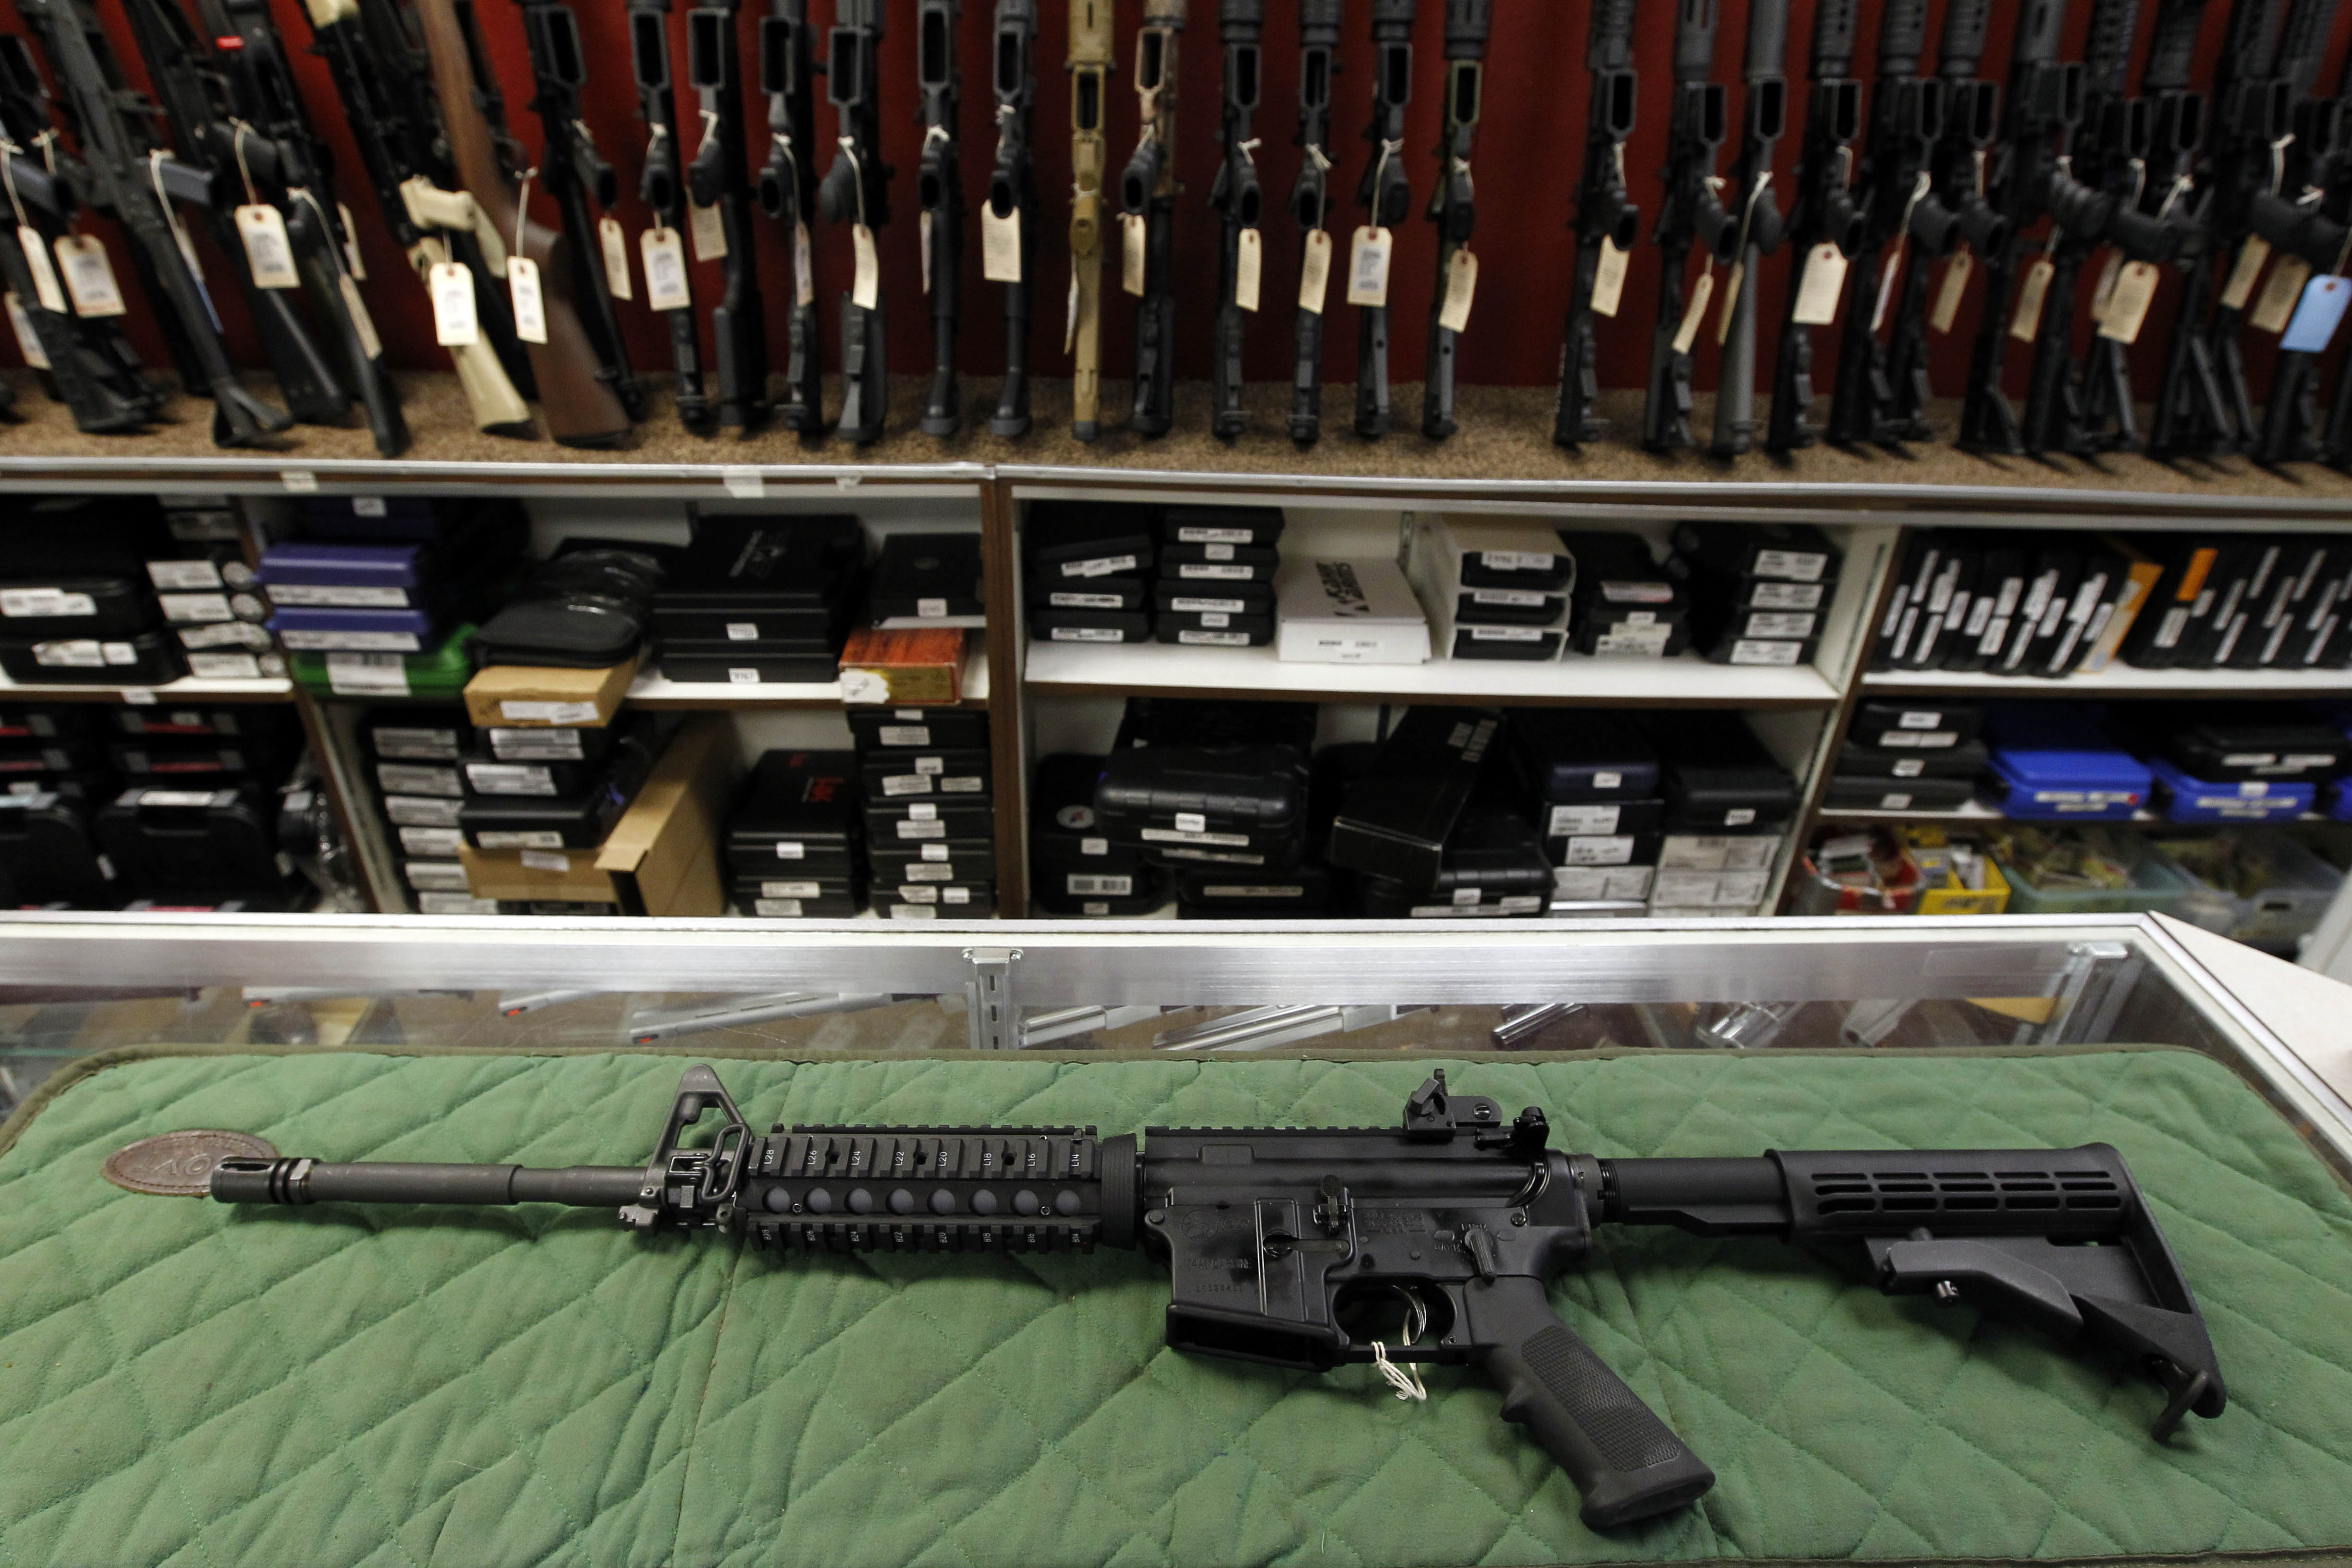 An AR-15 style rifle is displayed at a gun shop in Aurora, Colo. (AP Photo/Alex Brandon, File)